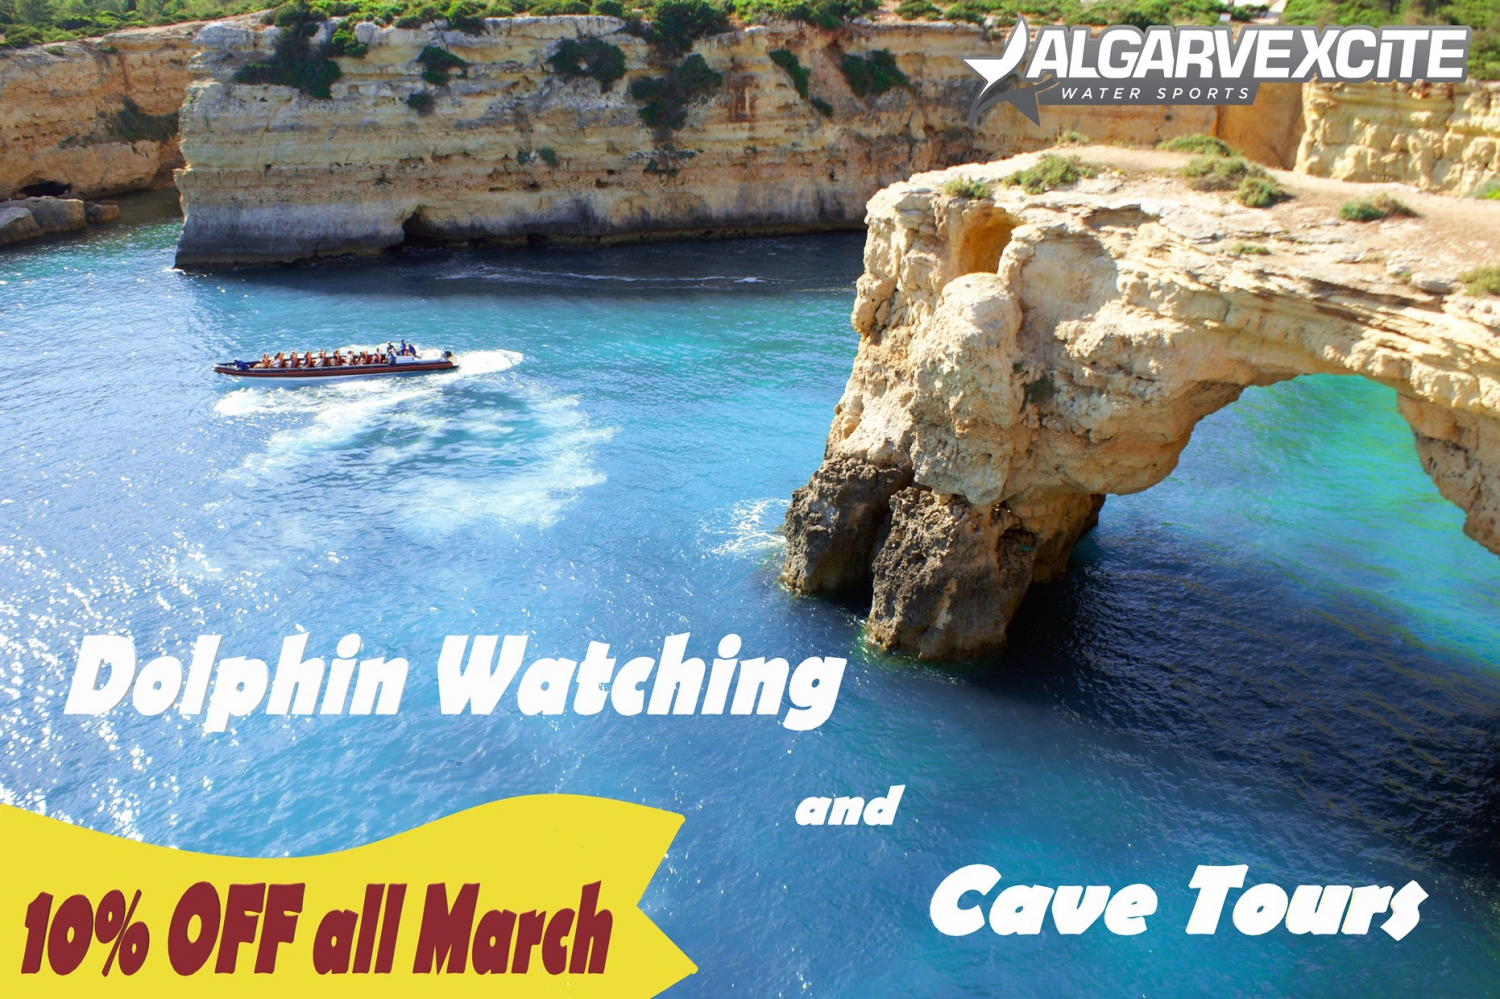 Special March Offer from AlgarveExcite